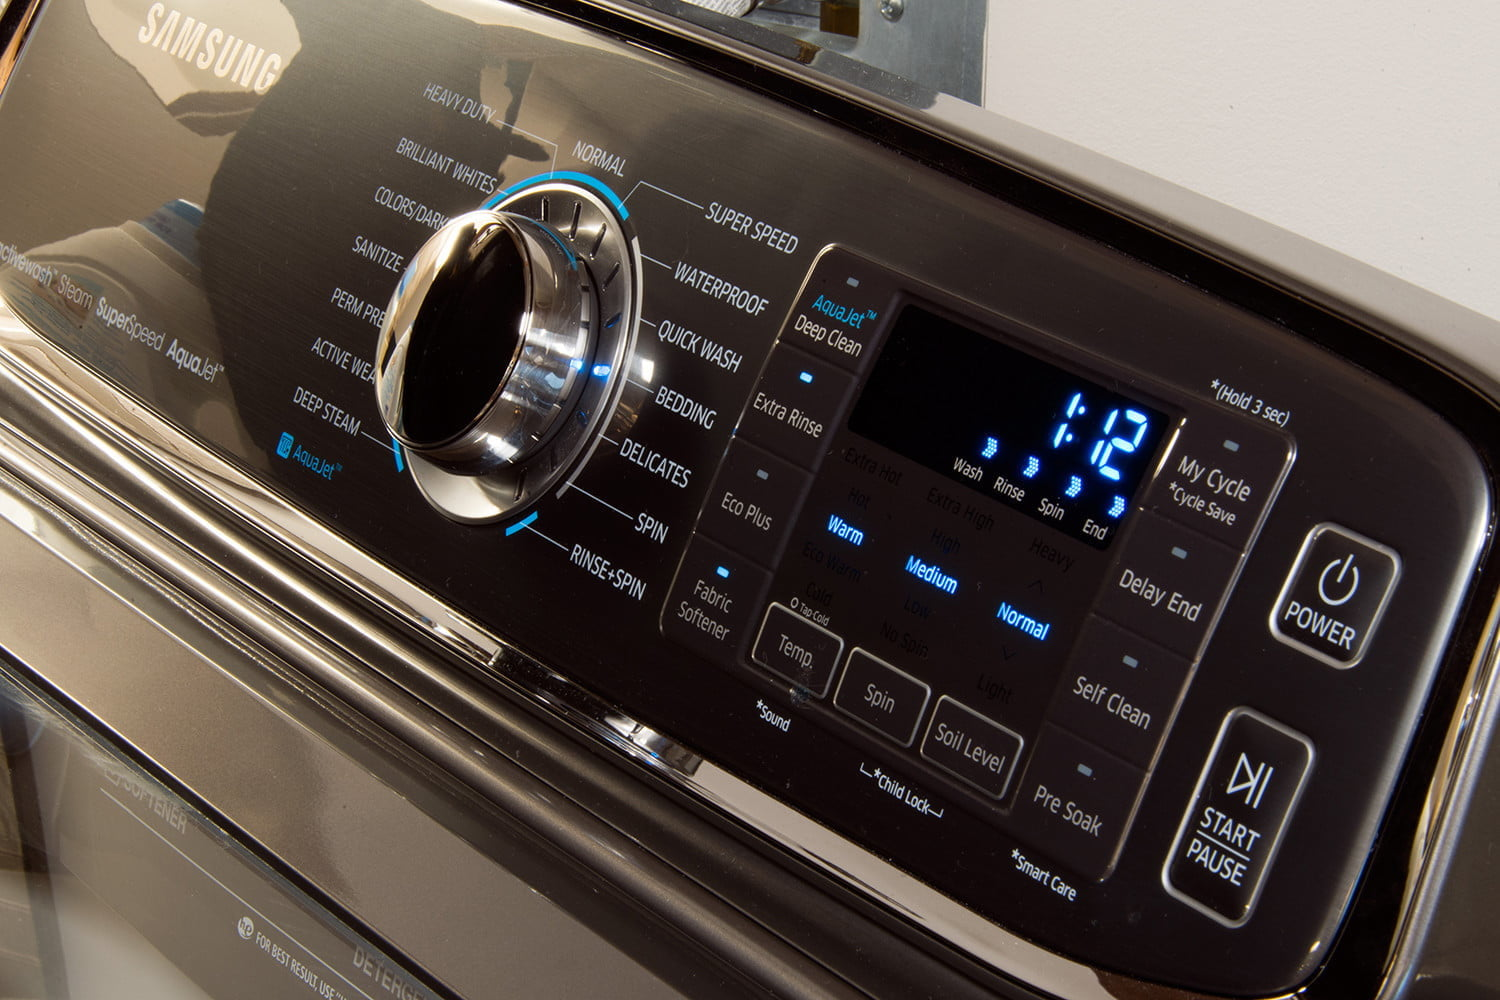 How to clean your washing machine the right way digital trends samsung activewash washer wa52j8700a panel1 biocorpaavc Images